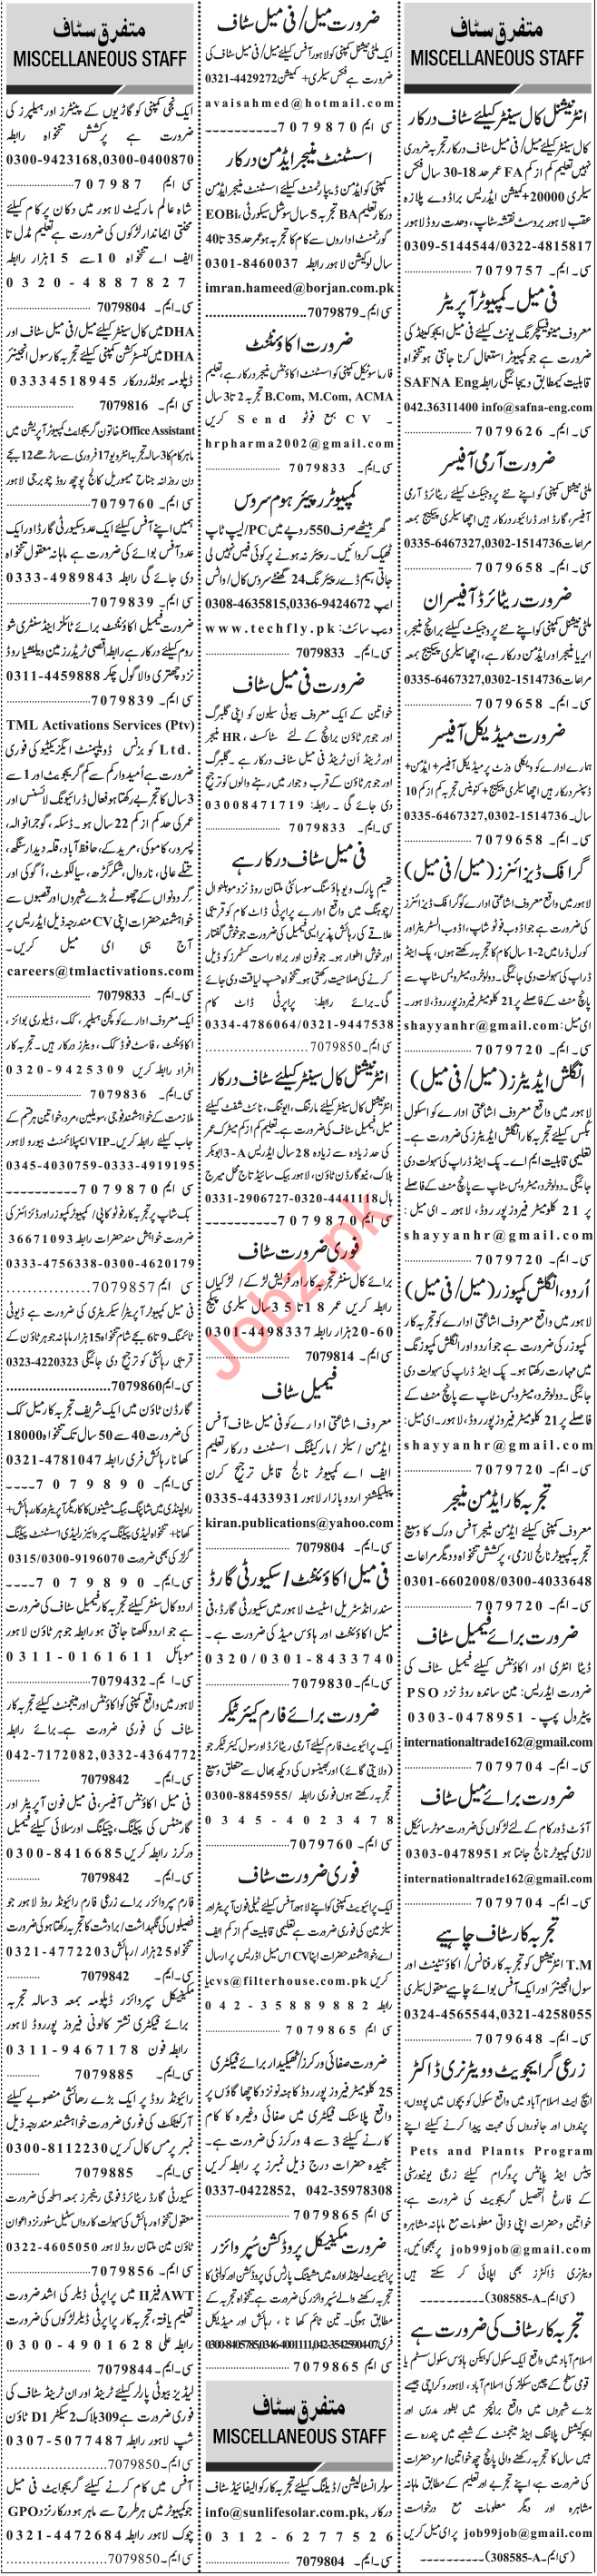 Jang Sunday 16th February Management Staff Jobs in Lahore